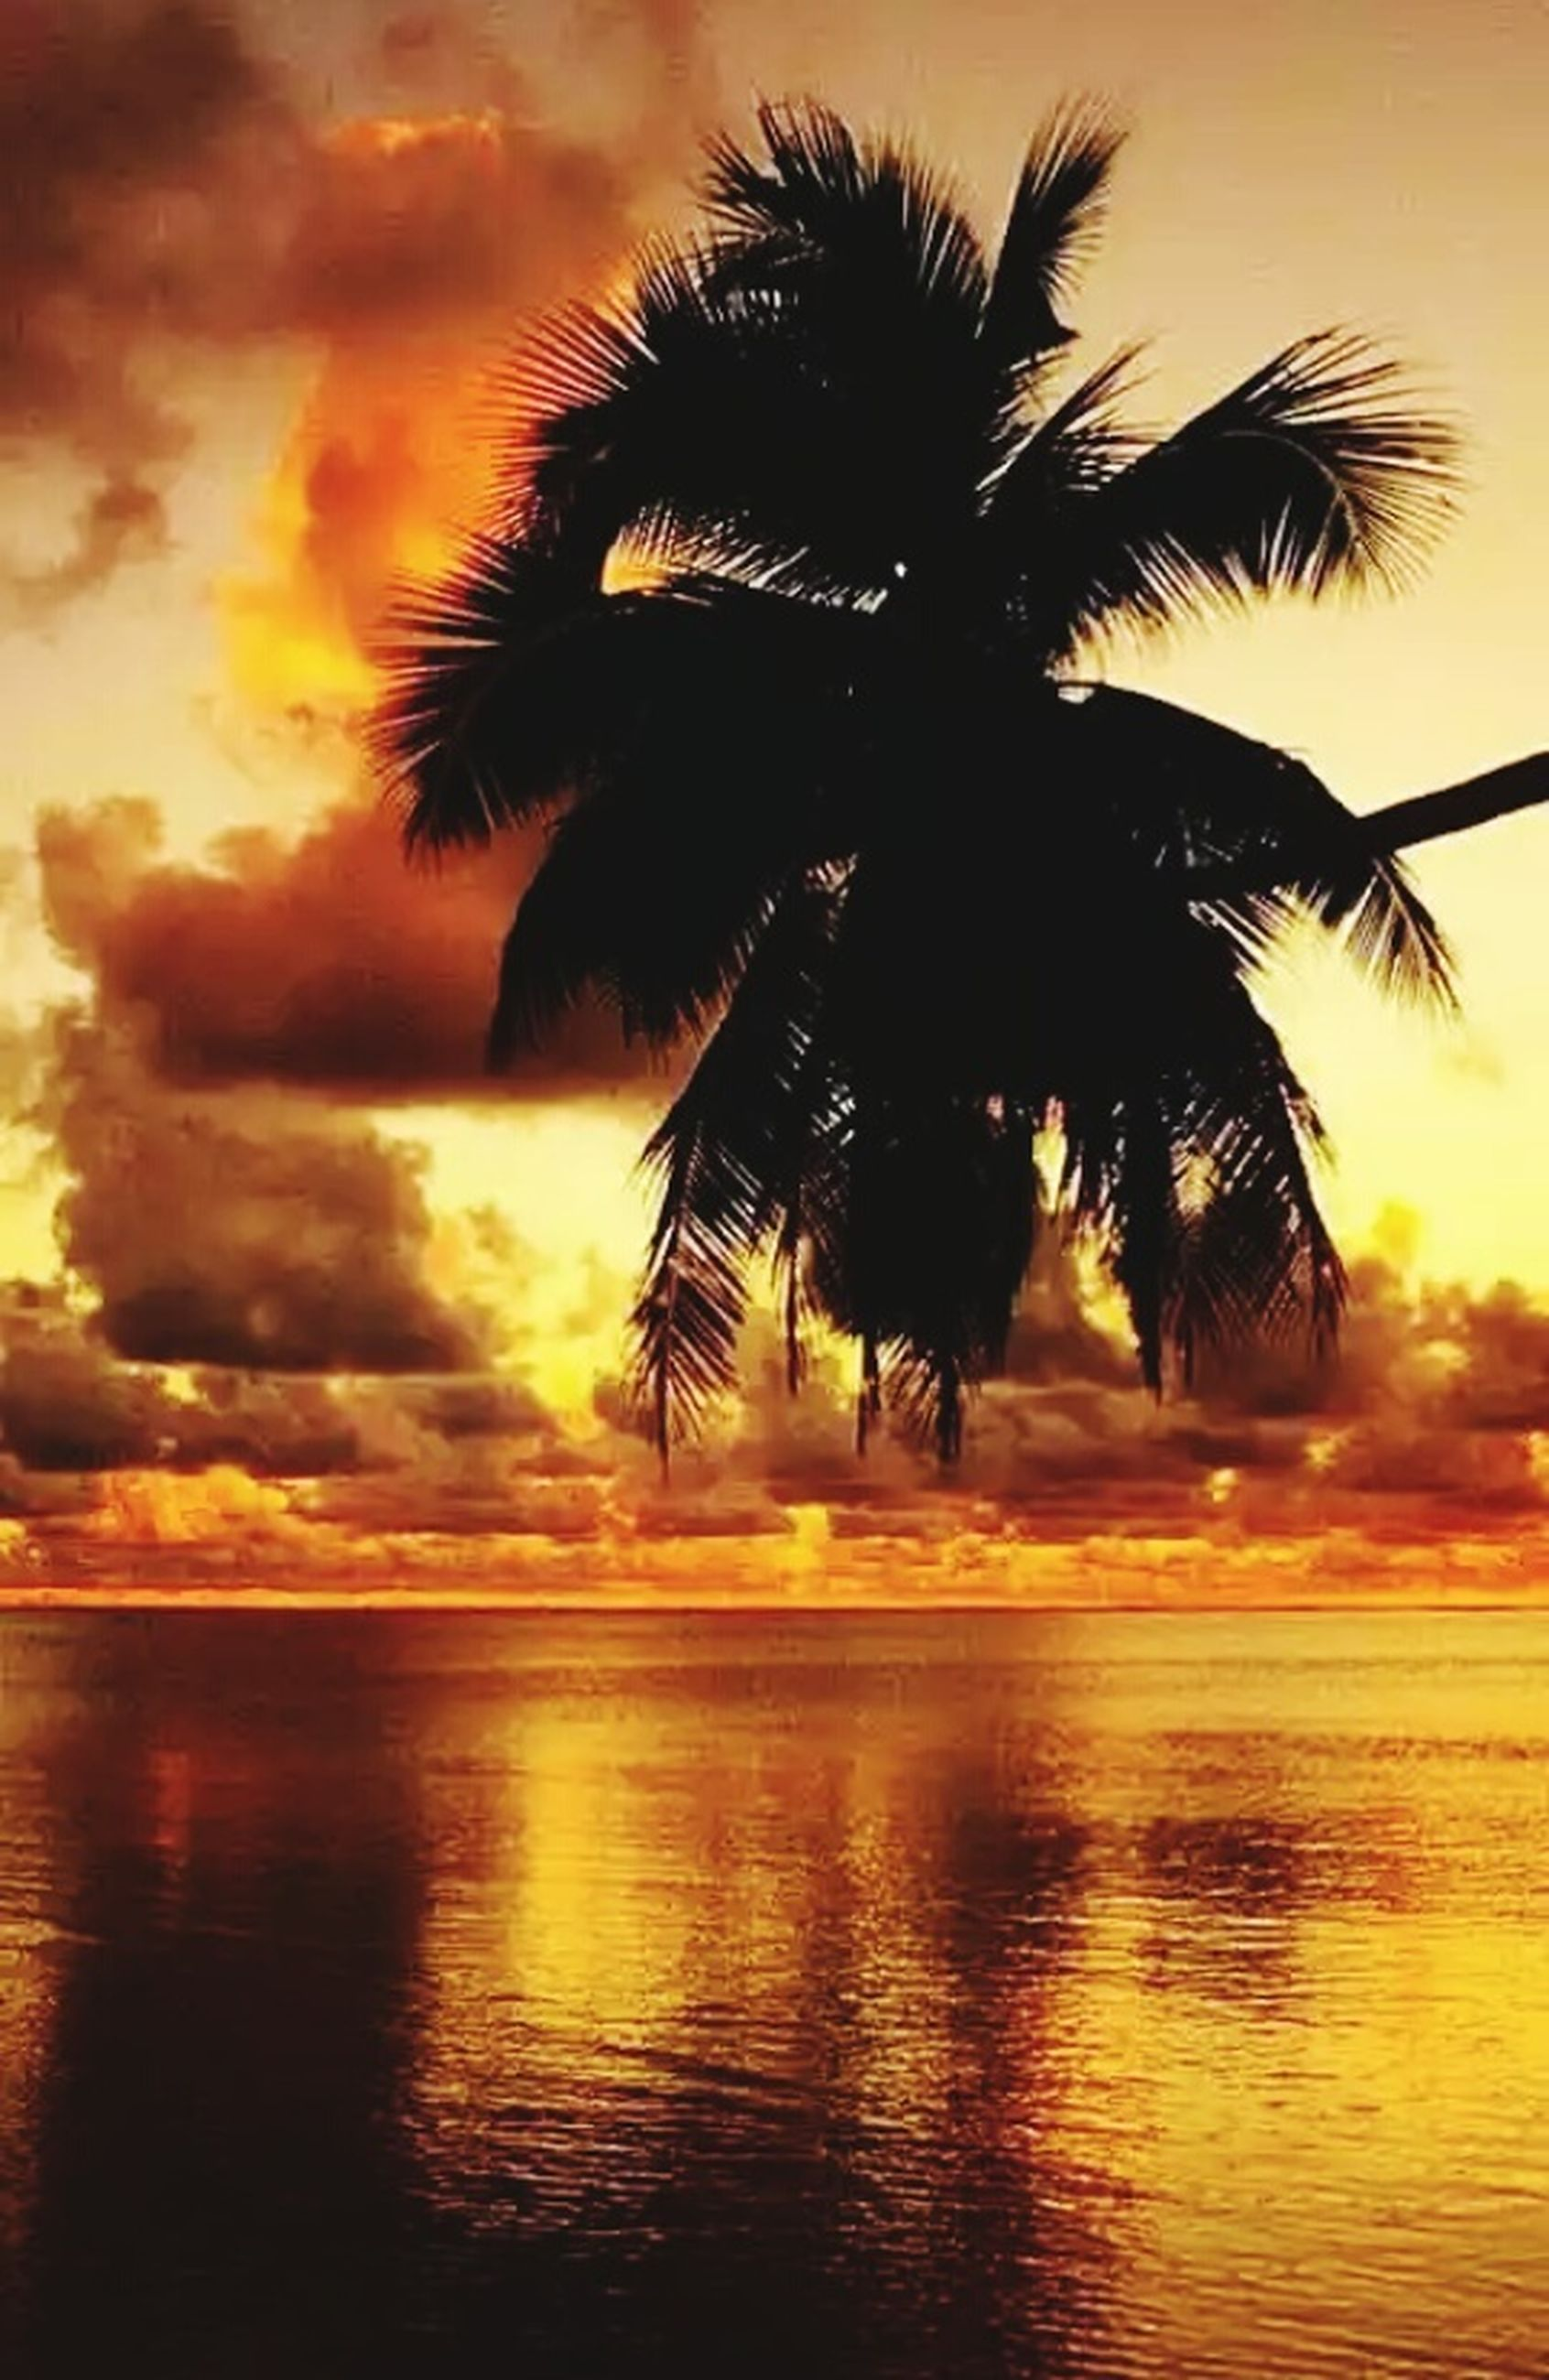 palm tree, sunset, tree, scenics, beauty in nature, silhouette, water, sky, orange color, sea, nature, tranquil scene, tranquility, reflection, no people, outdoors, beach, waterfront, cloud - sky, tree trunk, growth, vacations, horizon over water, day